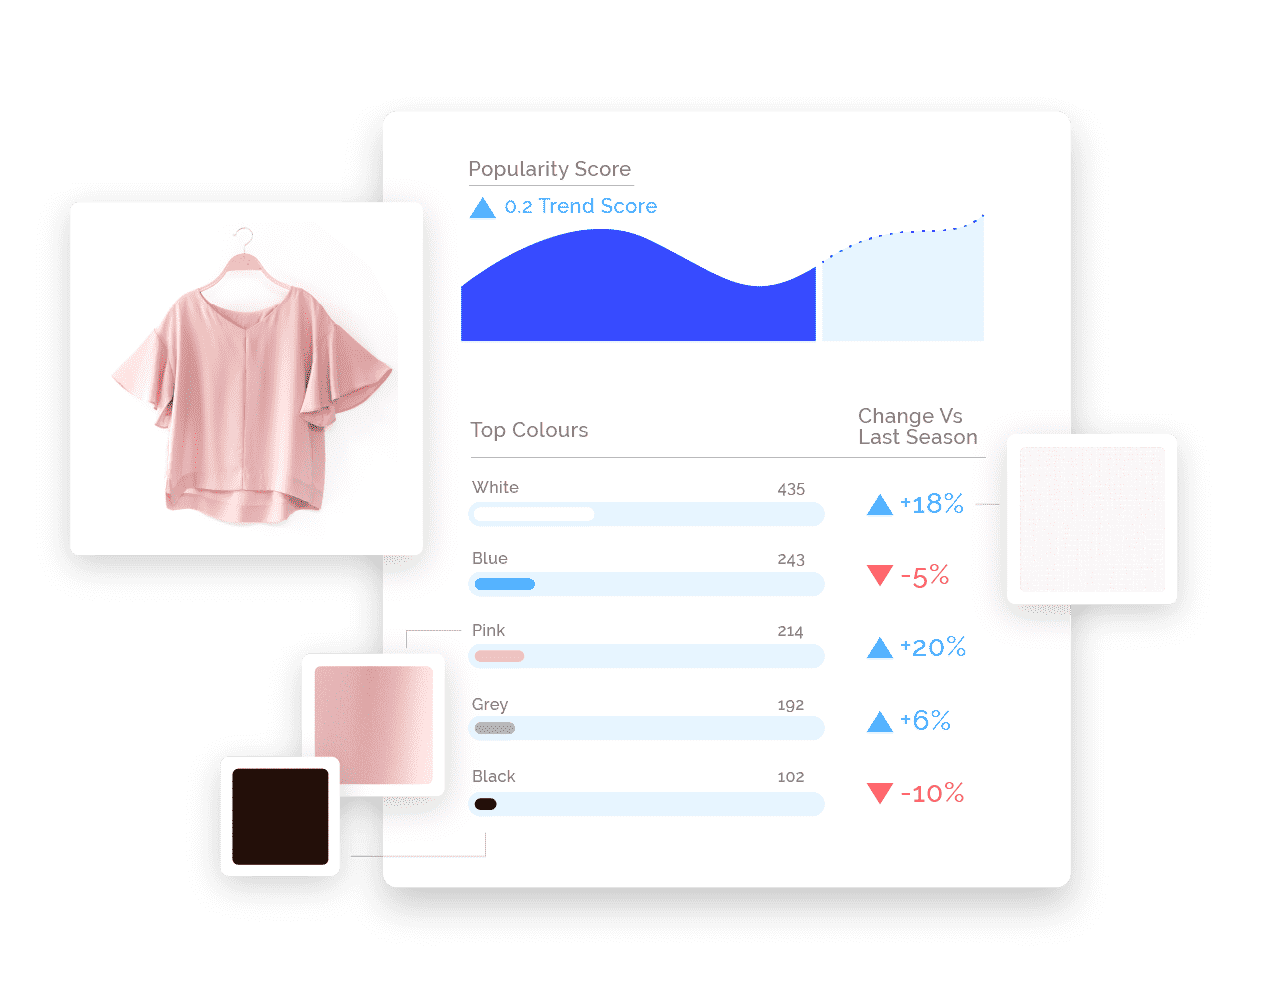 Image of a pink tshirt on the left, and animated trend chart to the right showing popularity trend score over time, and color choices underneath: White (+18%), Blue (-5%), Pink (+20%), Grey (+6%), Black (-10%)